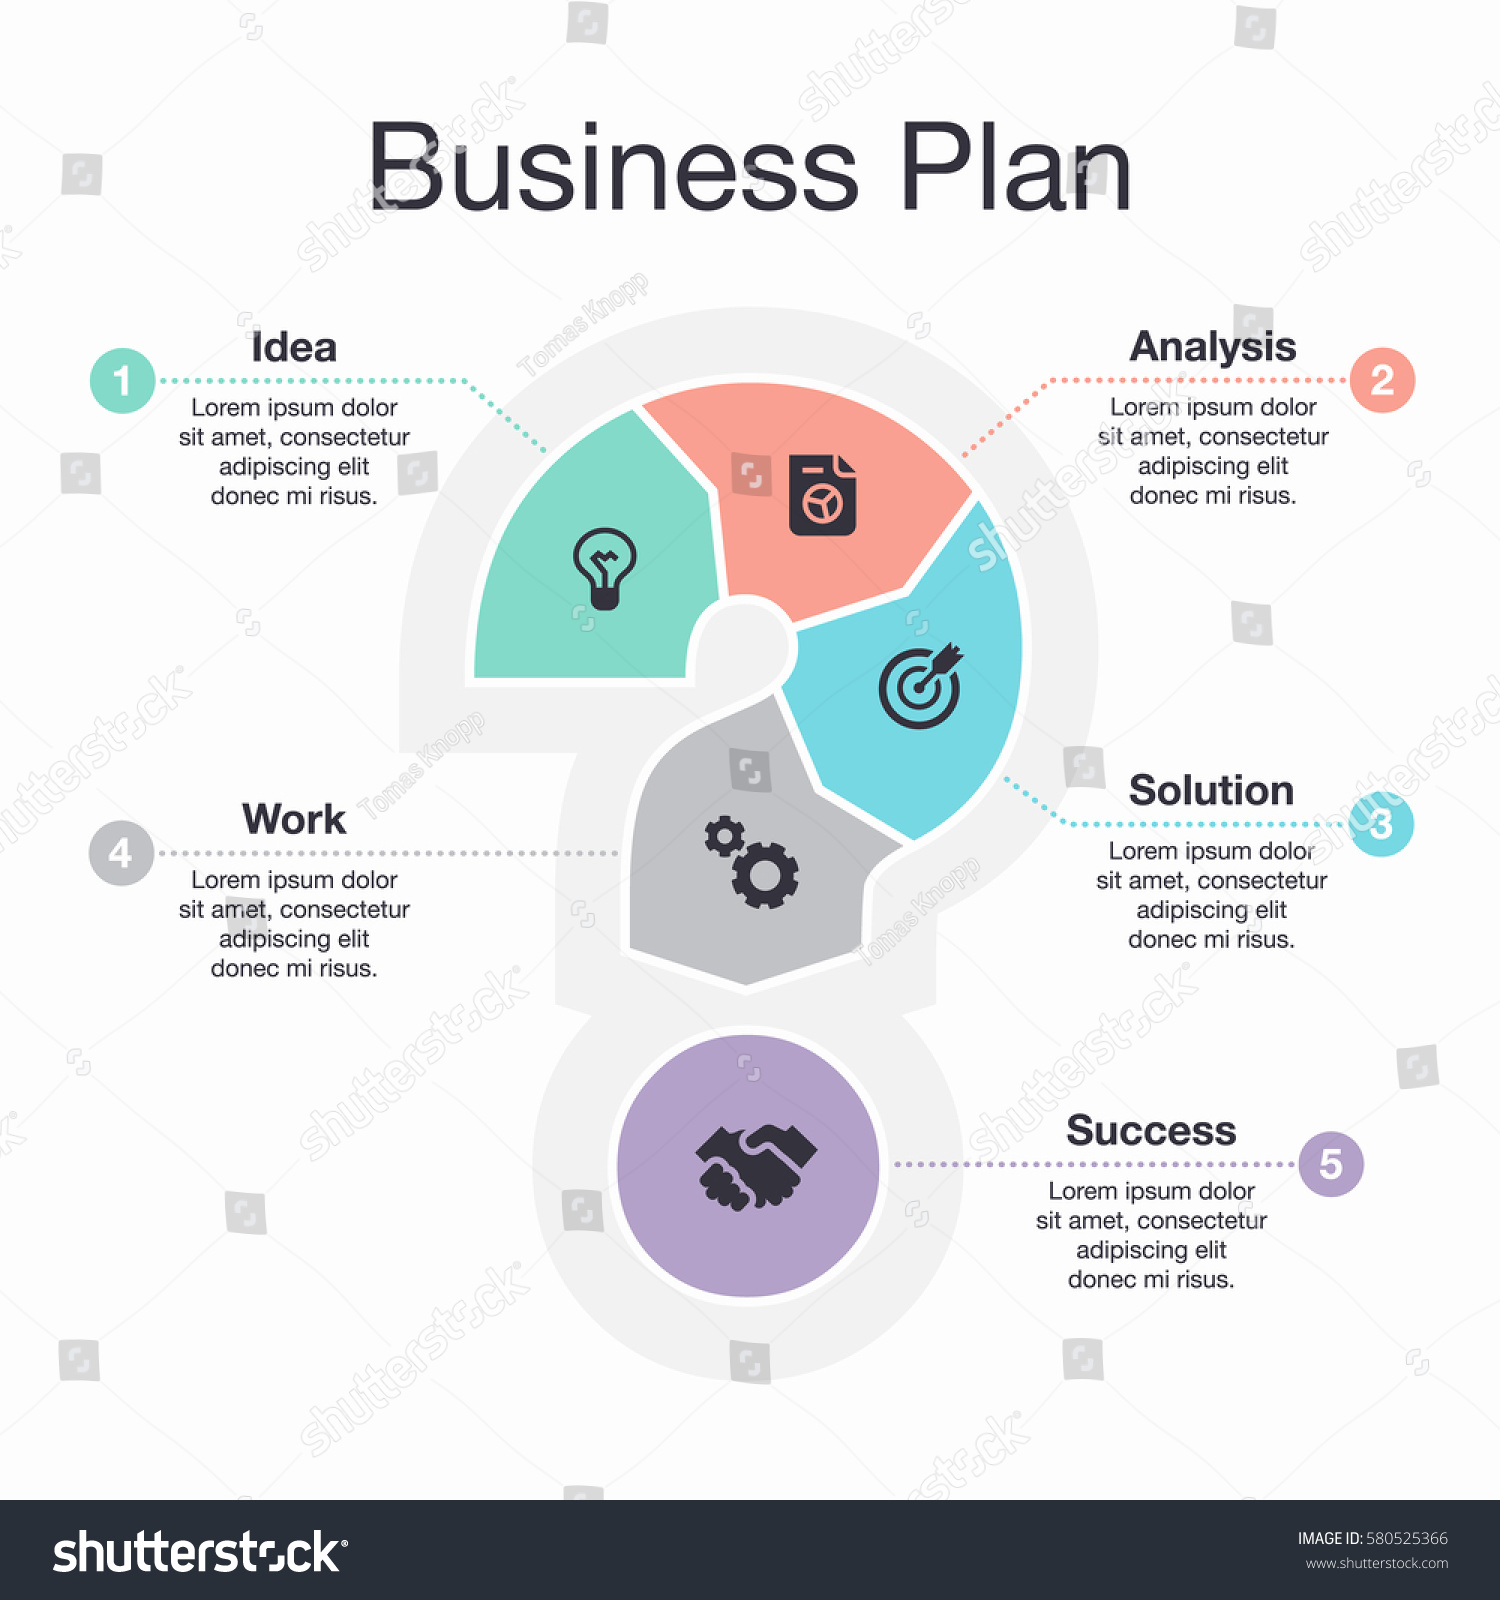 Tomas cabrerizo business plan